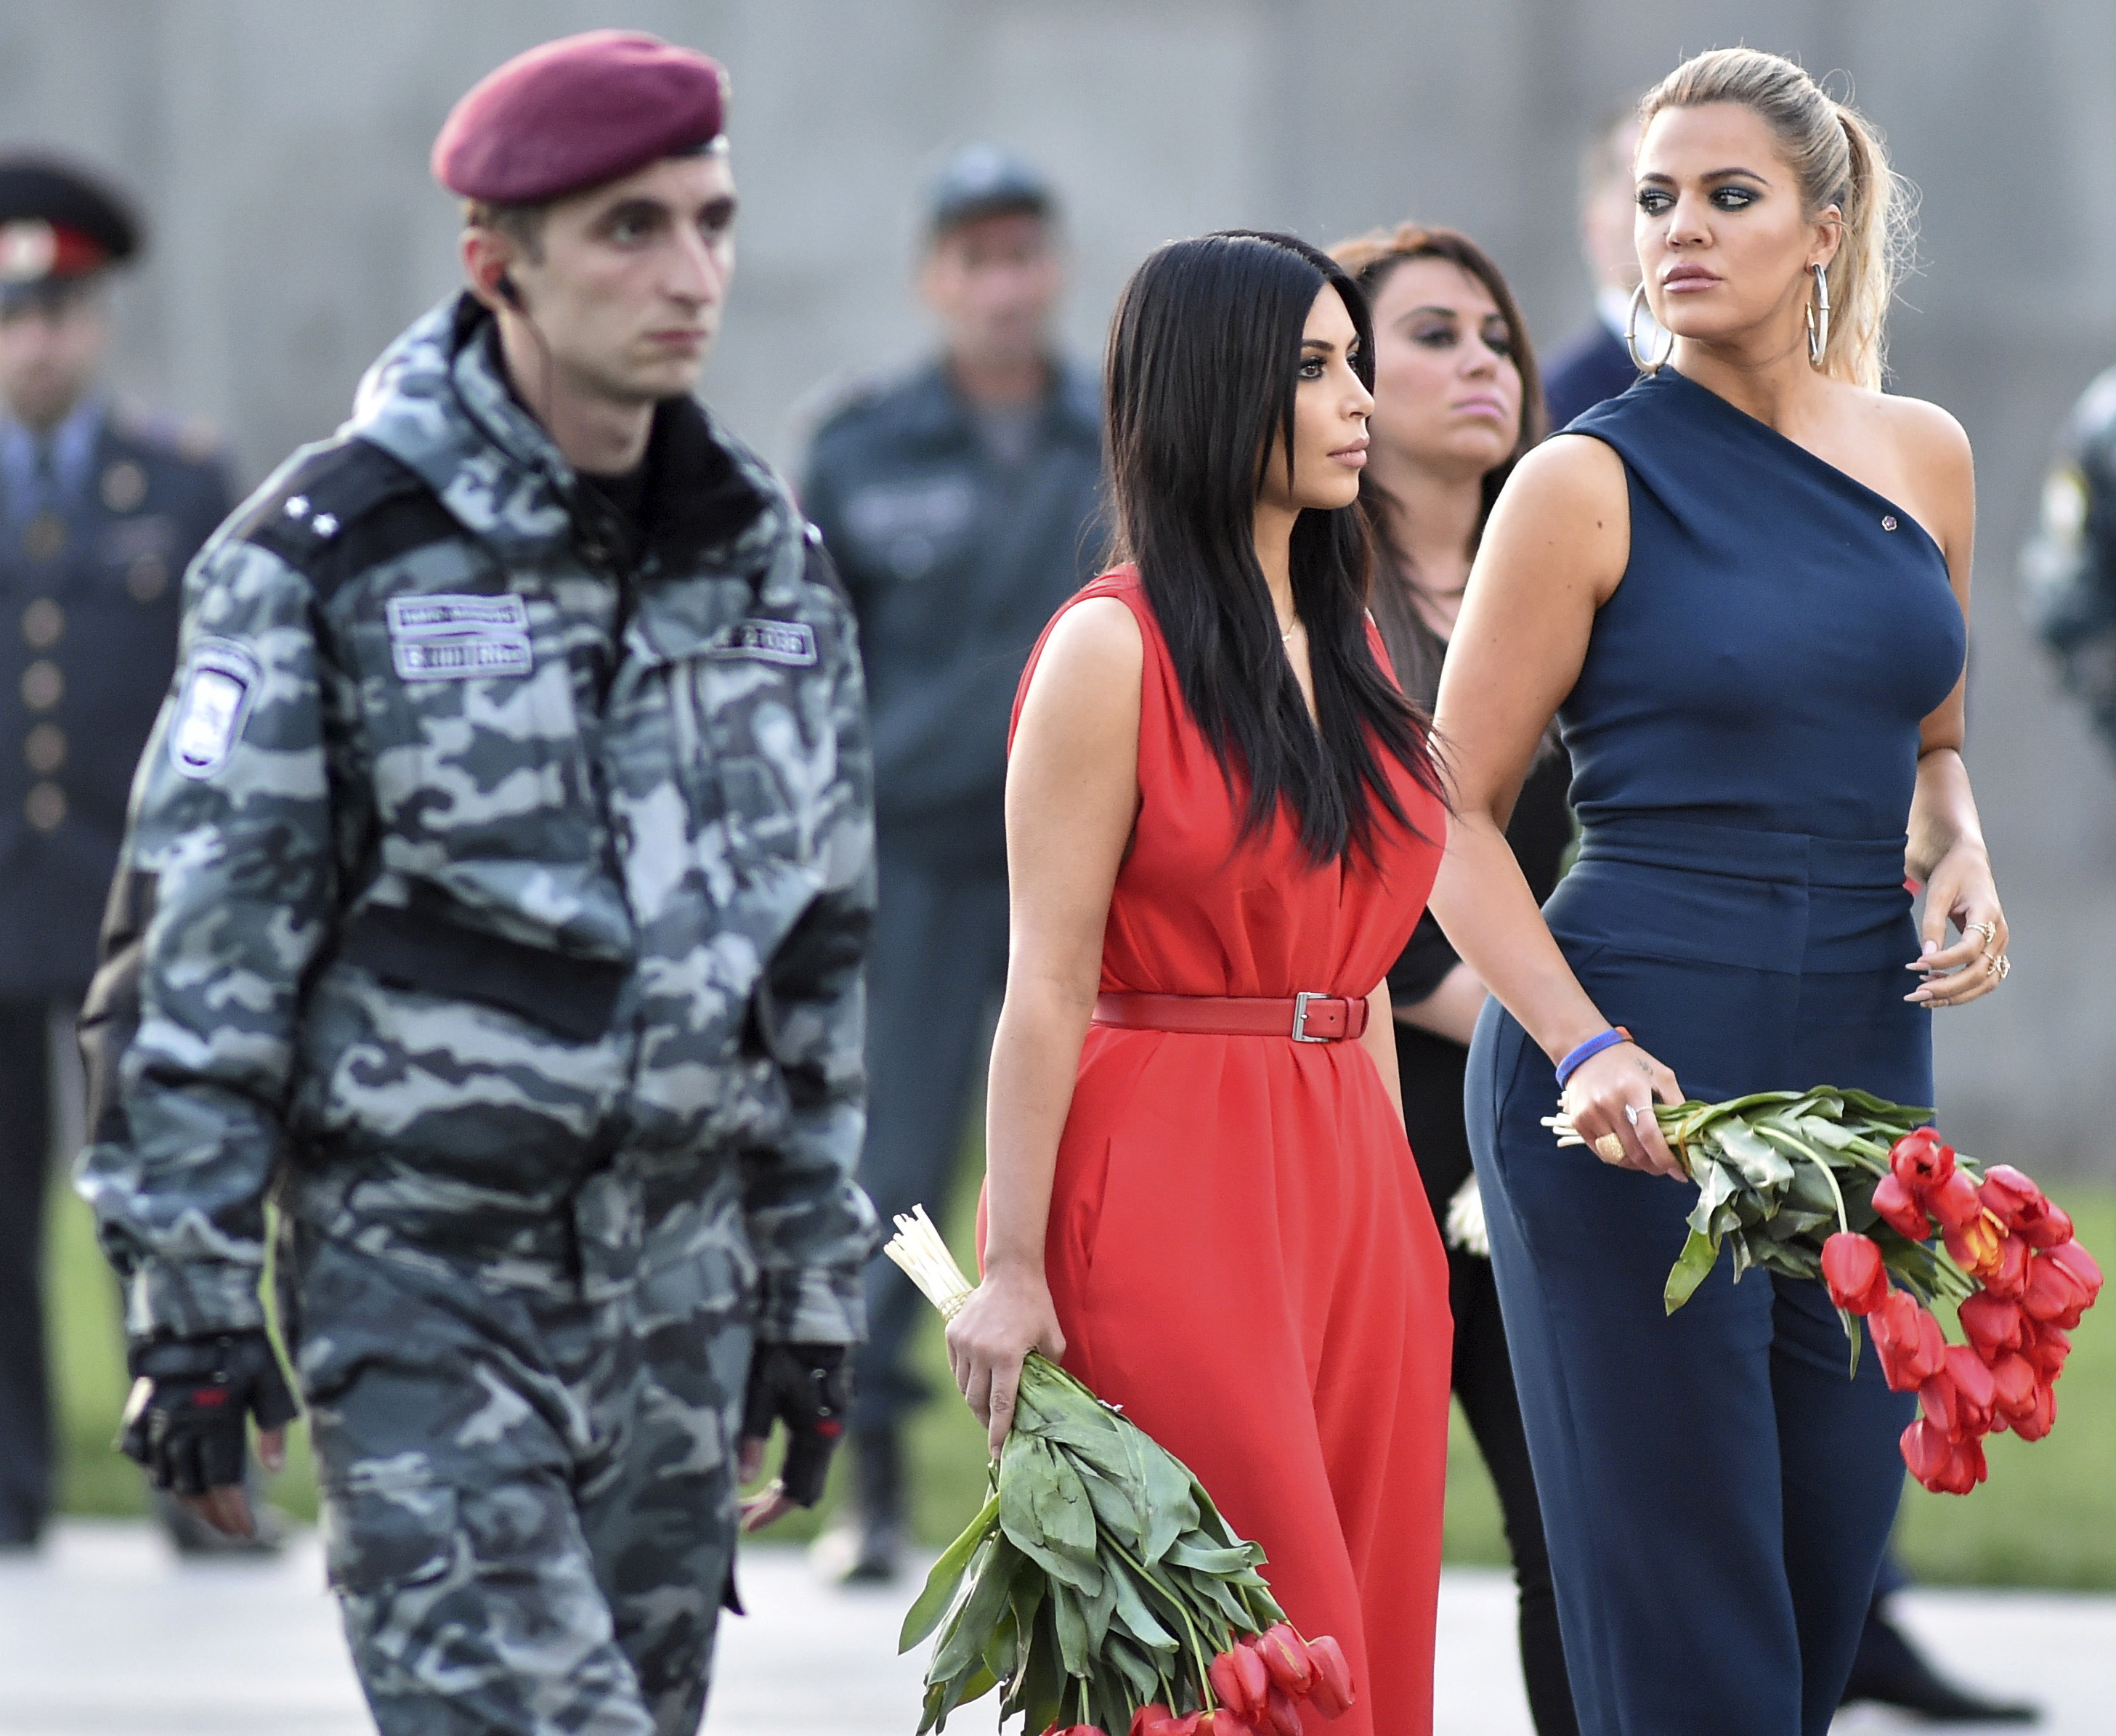 Television reality stars Kim Kardashian (center) and her sister Khloe Kardashian visit their ancestral homeland of Armenia and lay flowers at the Tsitsernakaberd  Armenian Genocide Memorial and Museum in Yerevan on April 10. Photo by Hayk Baghdasaryan/Photolure via Reuters